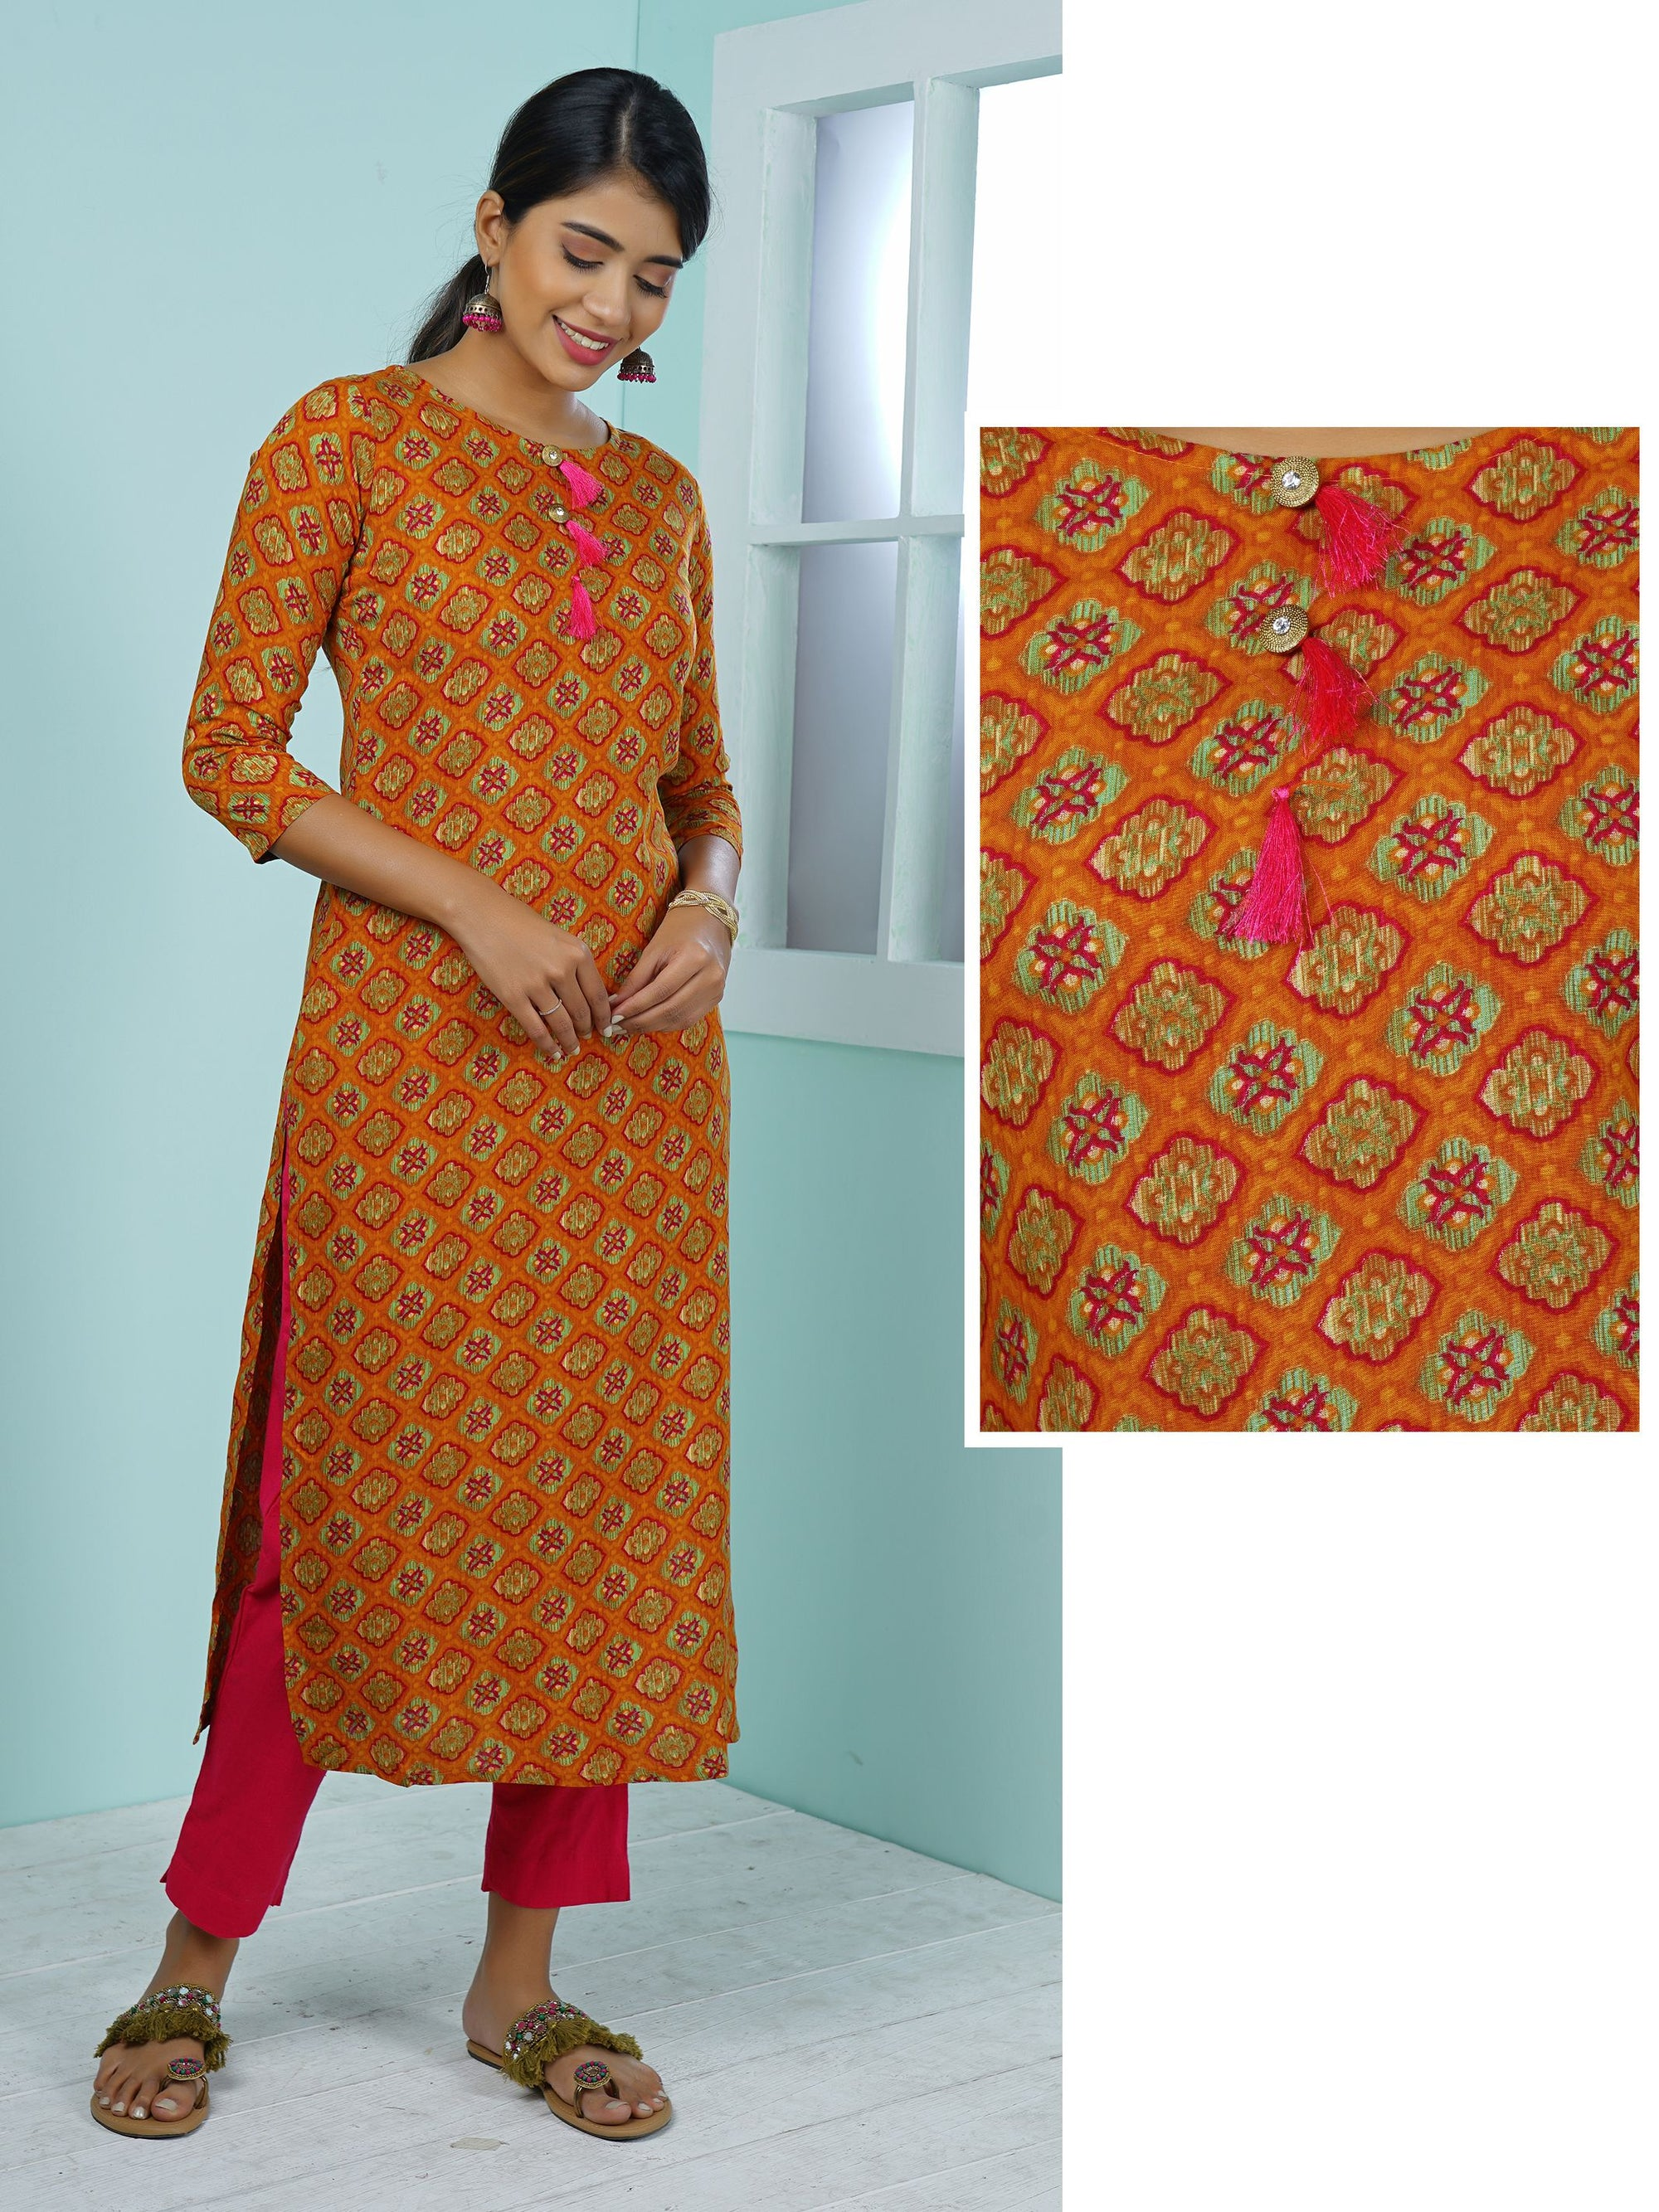 Abstract Geometric Tile Printed & Tasseled Kurta - Apricot Orange